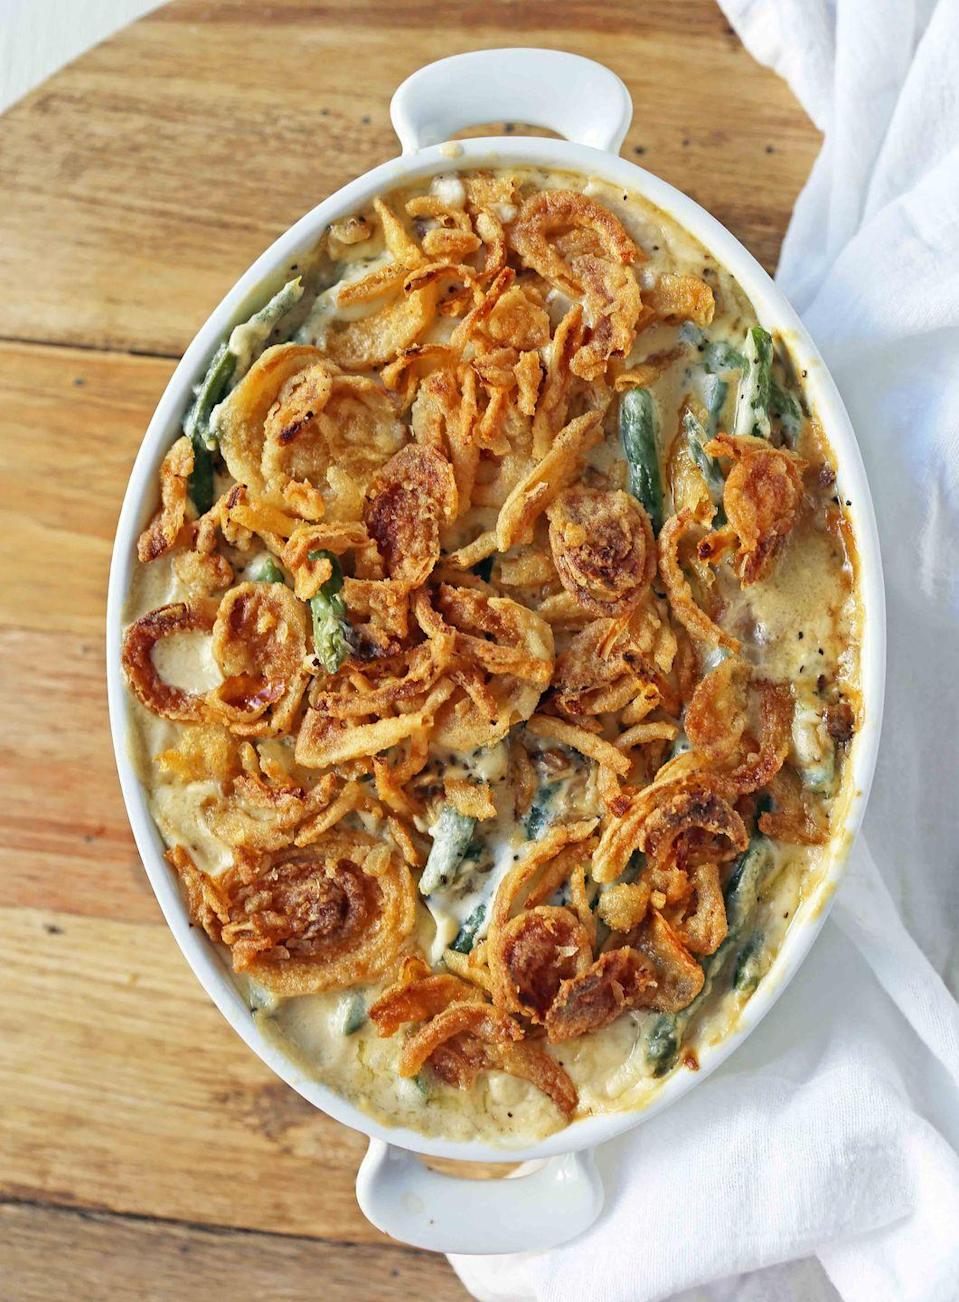 "<p>The beautiful thing about this <a href=""https://www.countryliving.com/food-drinks/g2728/green-bean-casserole-recipe/"" rel=""nofollow noopener"" target=""_blank"" data-ylk=""slk:green bean casserole"" class=""link rapid-noclick-resp"">green bean casserole</a> is that it can be adapted depending on what you have on hand. Fresh, frozen, or canned green beans will all work in this recipe.</p><p><strong>Get the recipe at <a href=""https://www.modernhoney.com/homemade-green-bean-casserole/"" rel=""nofollow noopener"" target=""_blank"" data-ylk=""slk:Modern Honey"" class=""link rapid-noclick-resp"">Modern Honey</a>.</strong></p><p><strong><a class=""link rapid-noclick-resp"" href=""https://www.amazon.com/dp/B074Z5X8MT/?tag=syn-yahoo-20&ascsubtag=%5Bartid%7C10050.g.34554232%5Bsrc%7Cyahoo-us"" rel=""nofollow noopener"" target=""_blank"" data-ylk=""slk:SHOP BAKING DISHES"">SHOP BAKING DISHES</a><br></strong></p>"